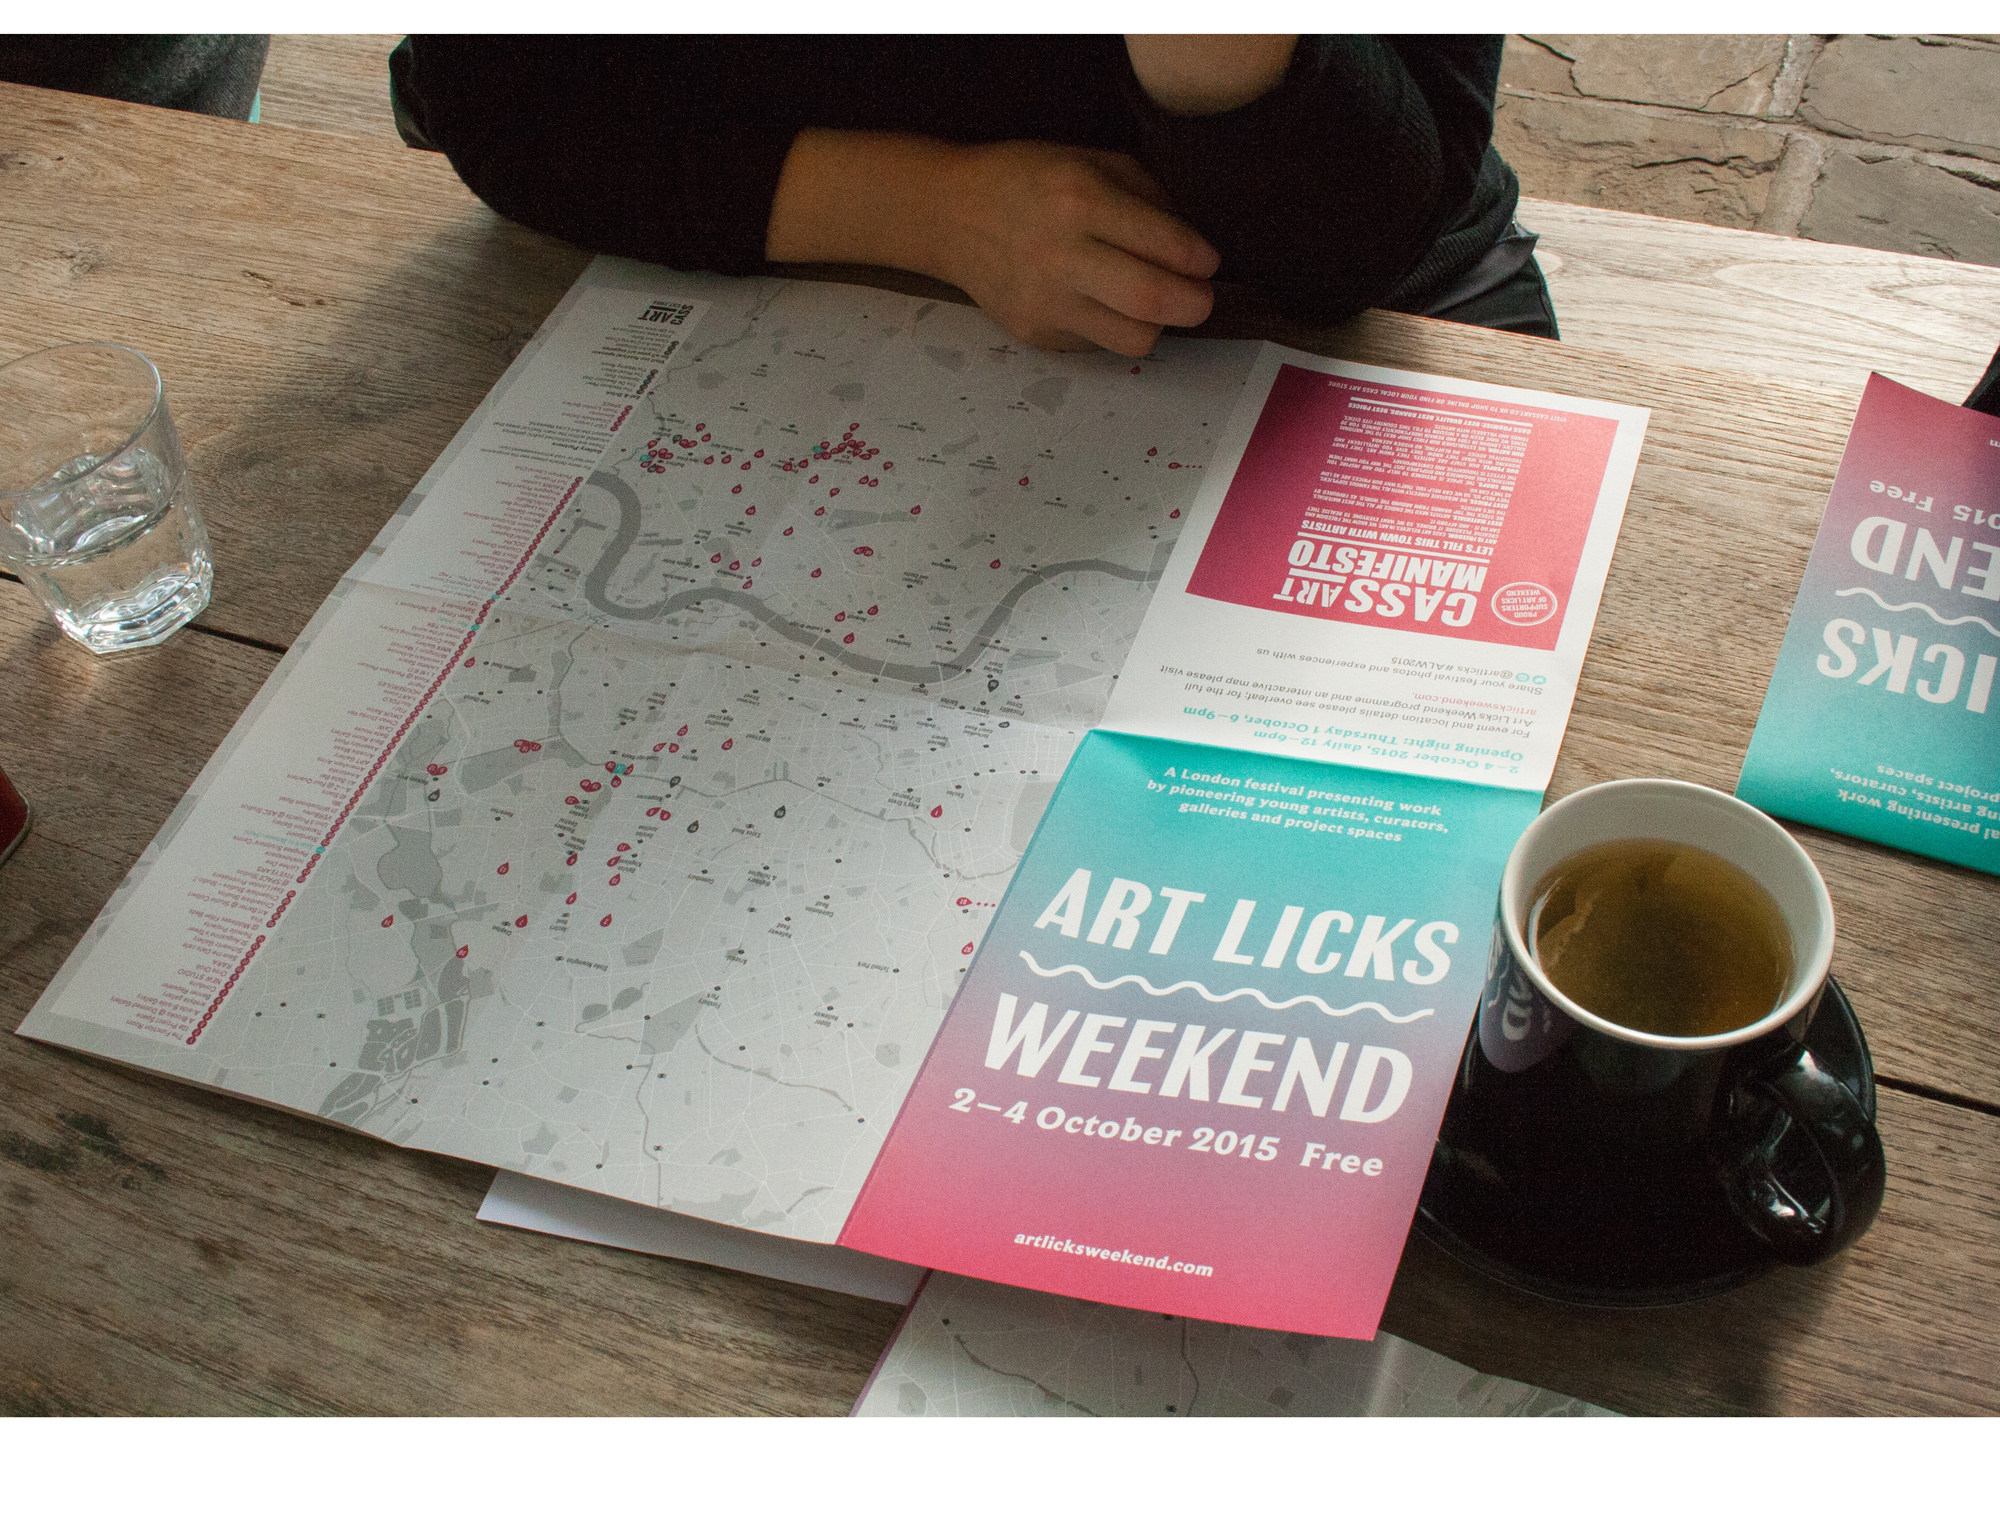 Art Licks Weekend